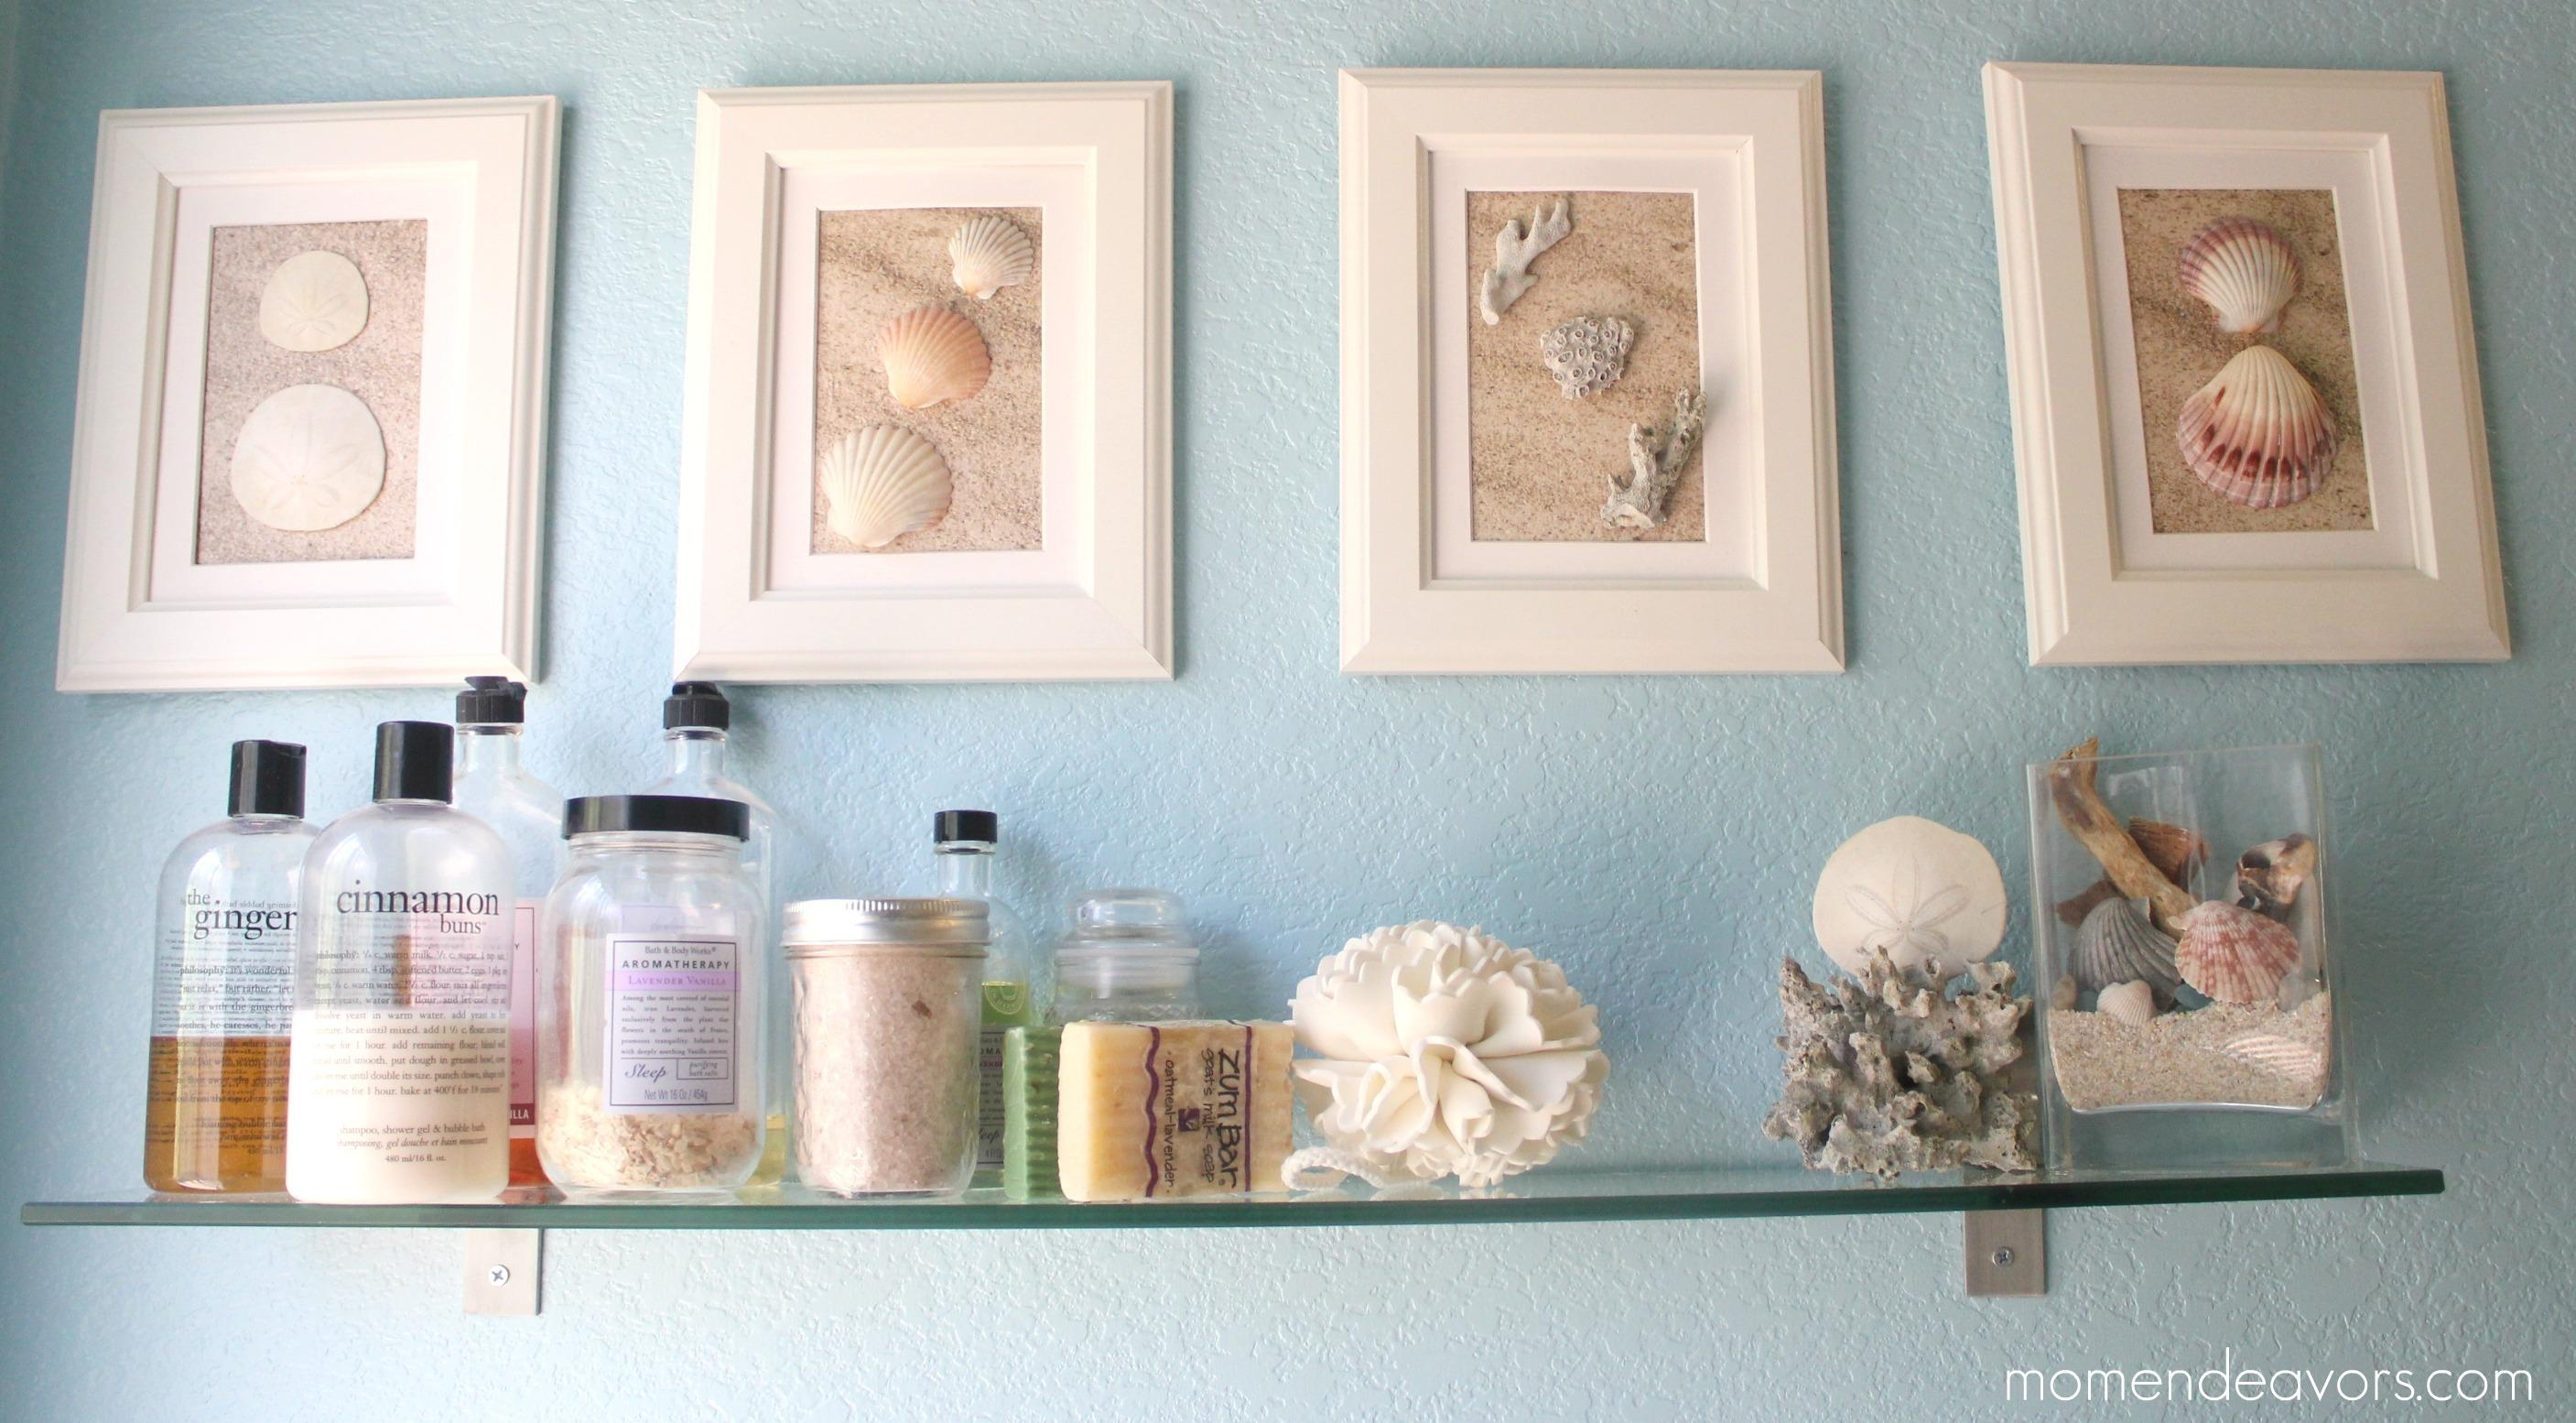 Shell Bathroom Wall Decor Diy, Have You Made Anything With Shells Pertaining To Capiz Shell Wall Art (Image 20 of 20)